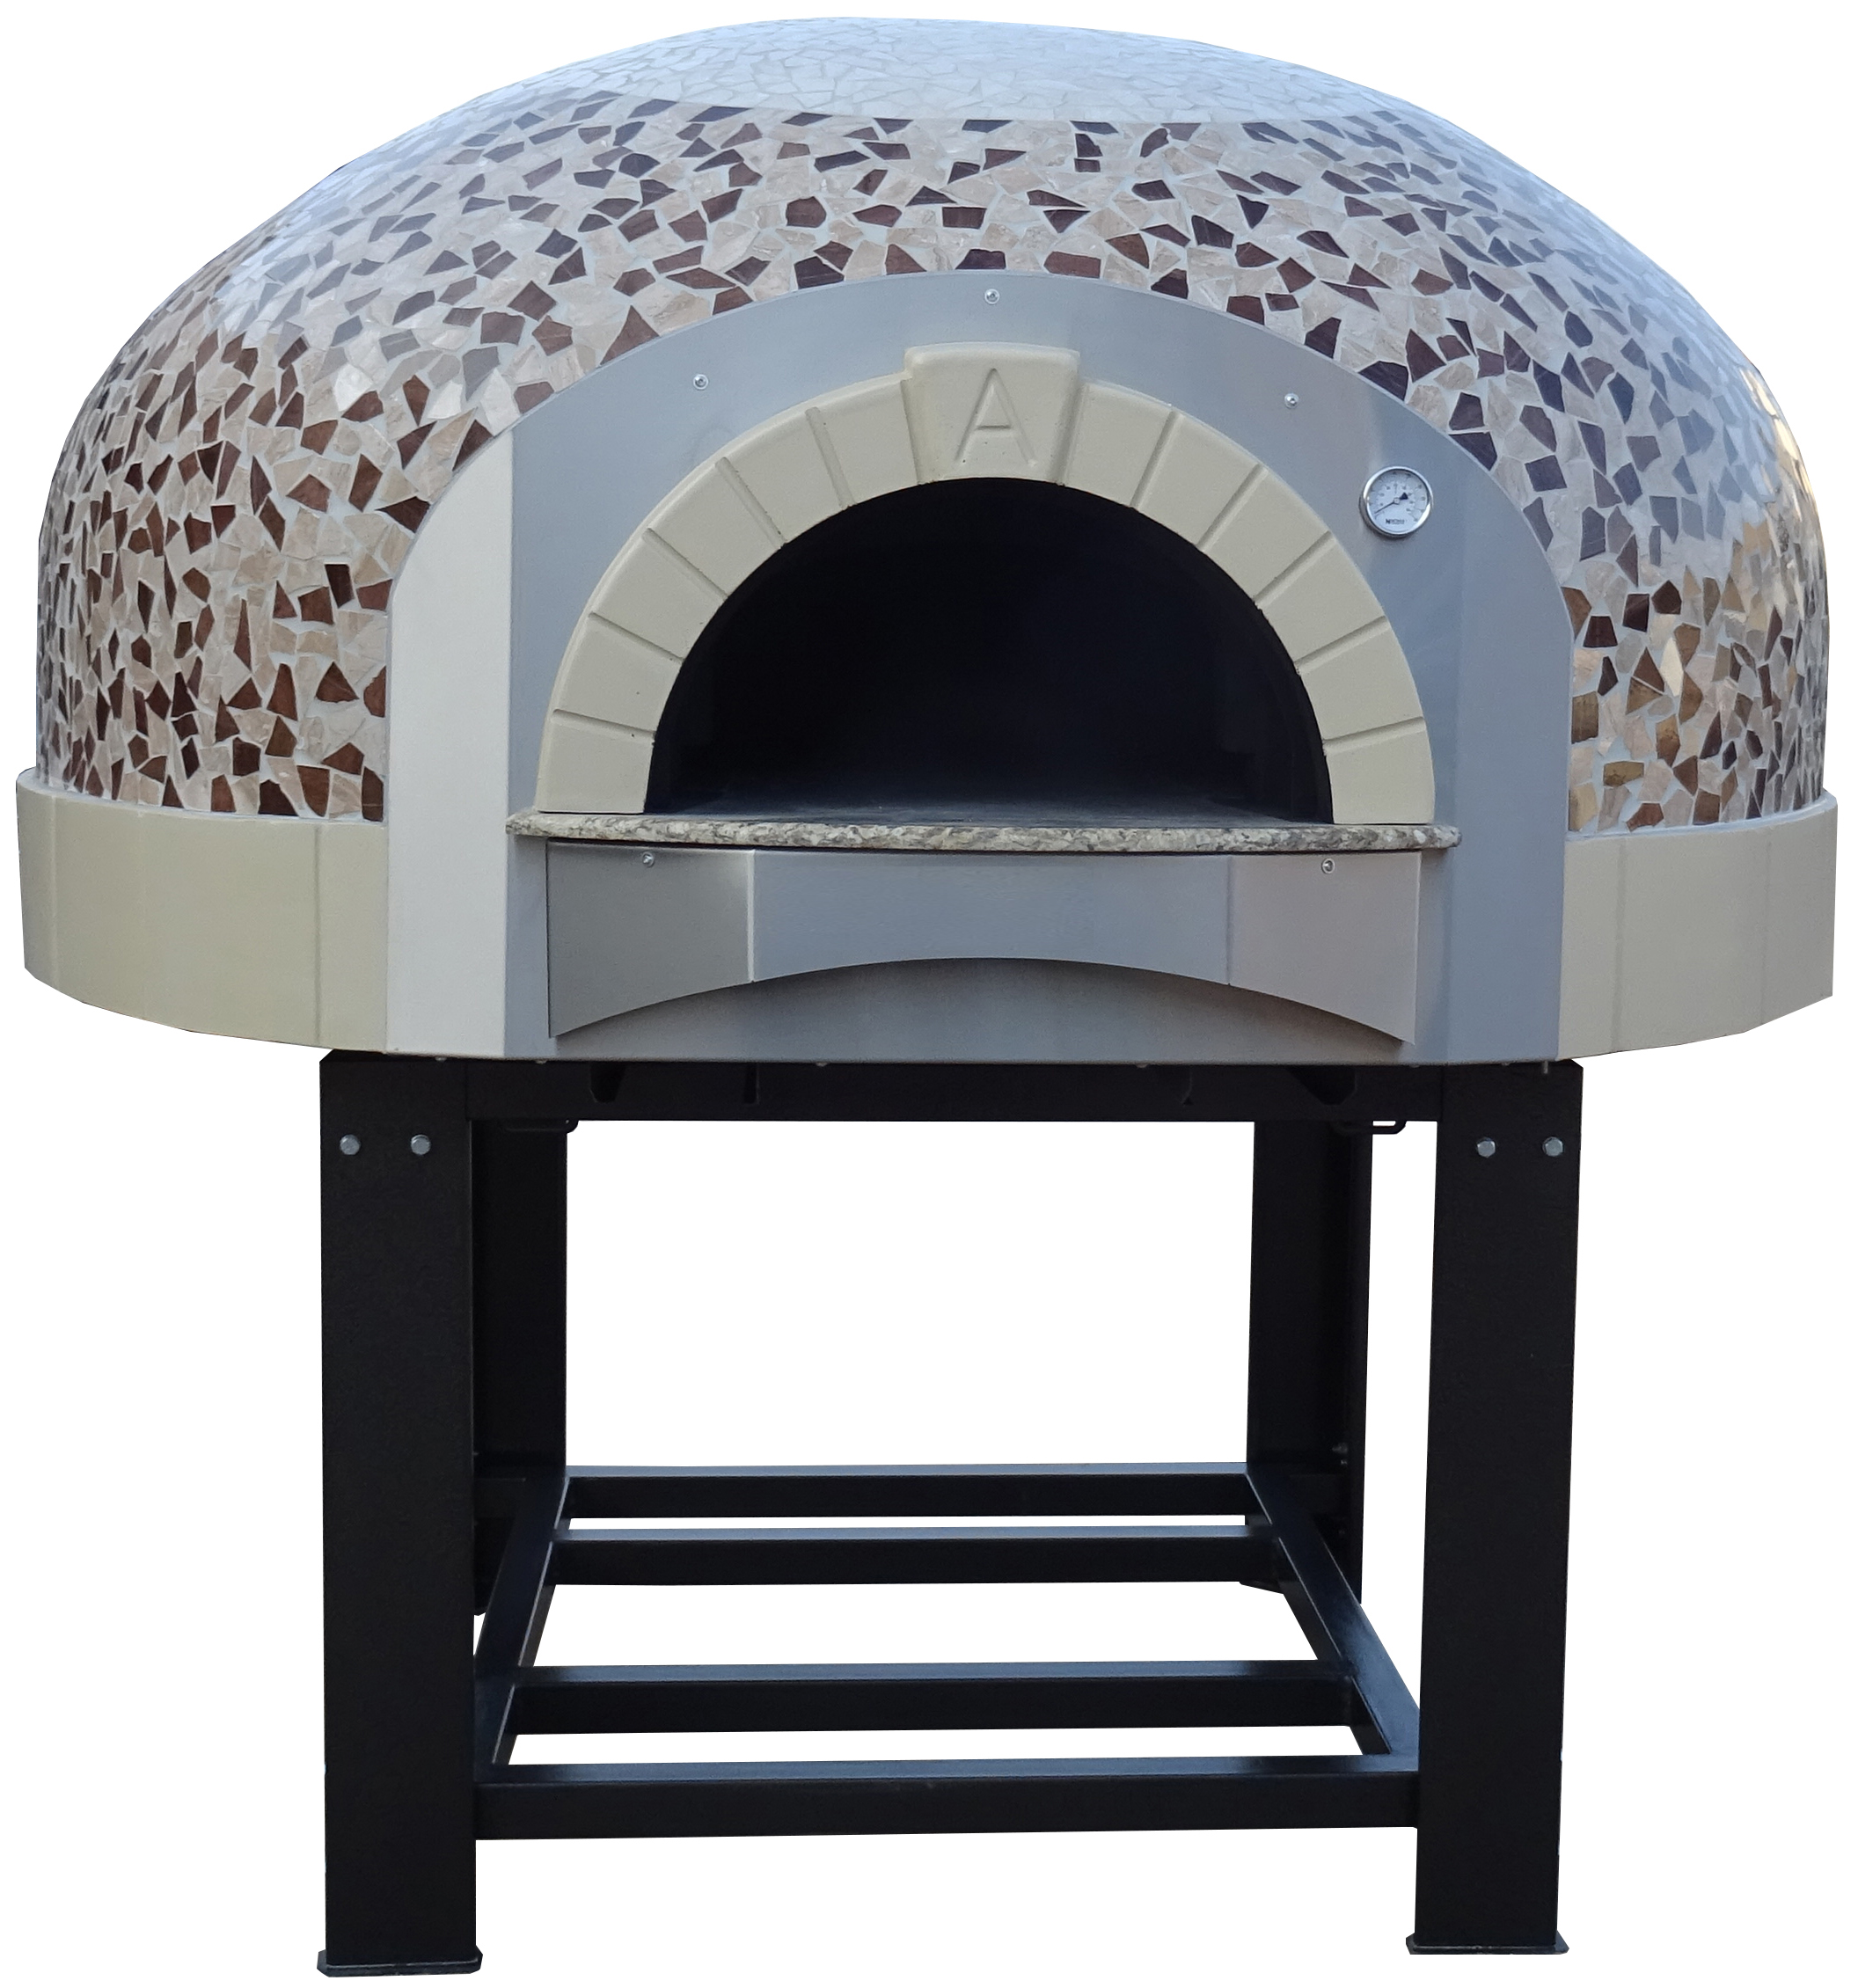 commercial professional ovens mobi pizza ovens ltd amazing